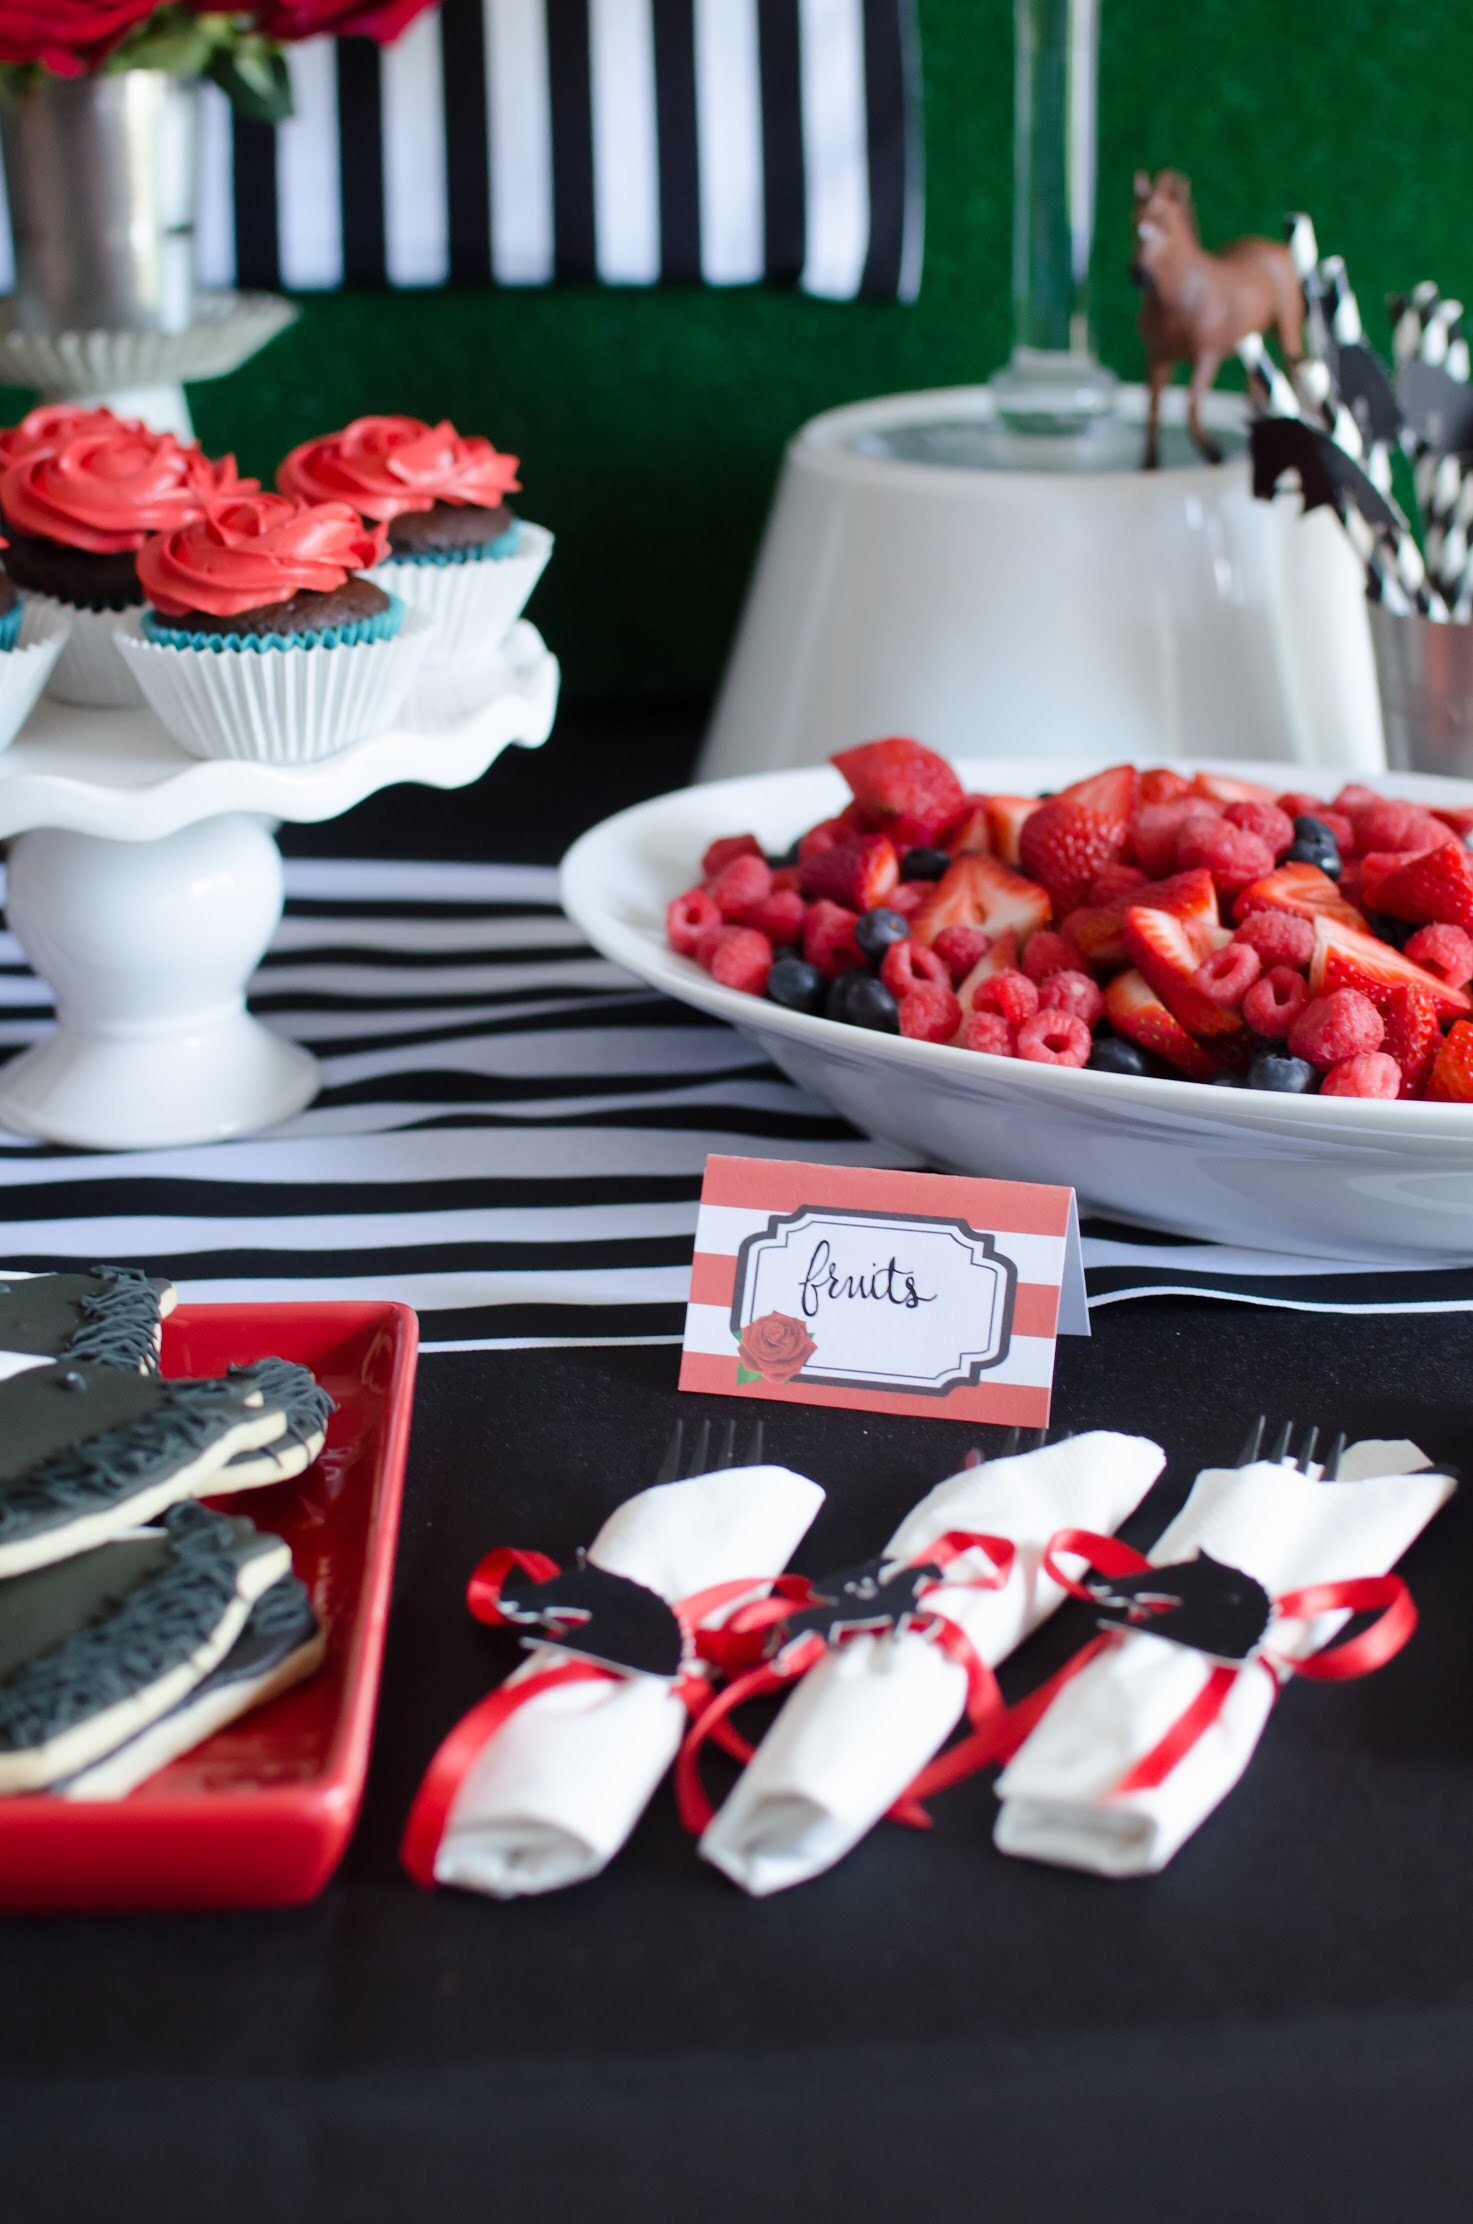 Cute food labels for a Kentucky Derby party. Styling by Mint Event Design www.minteventdesign.com